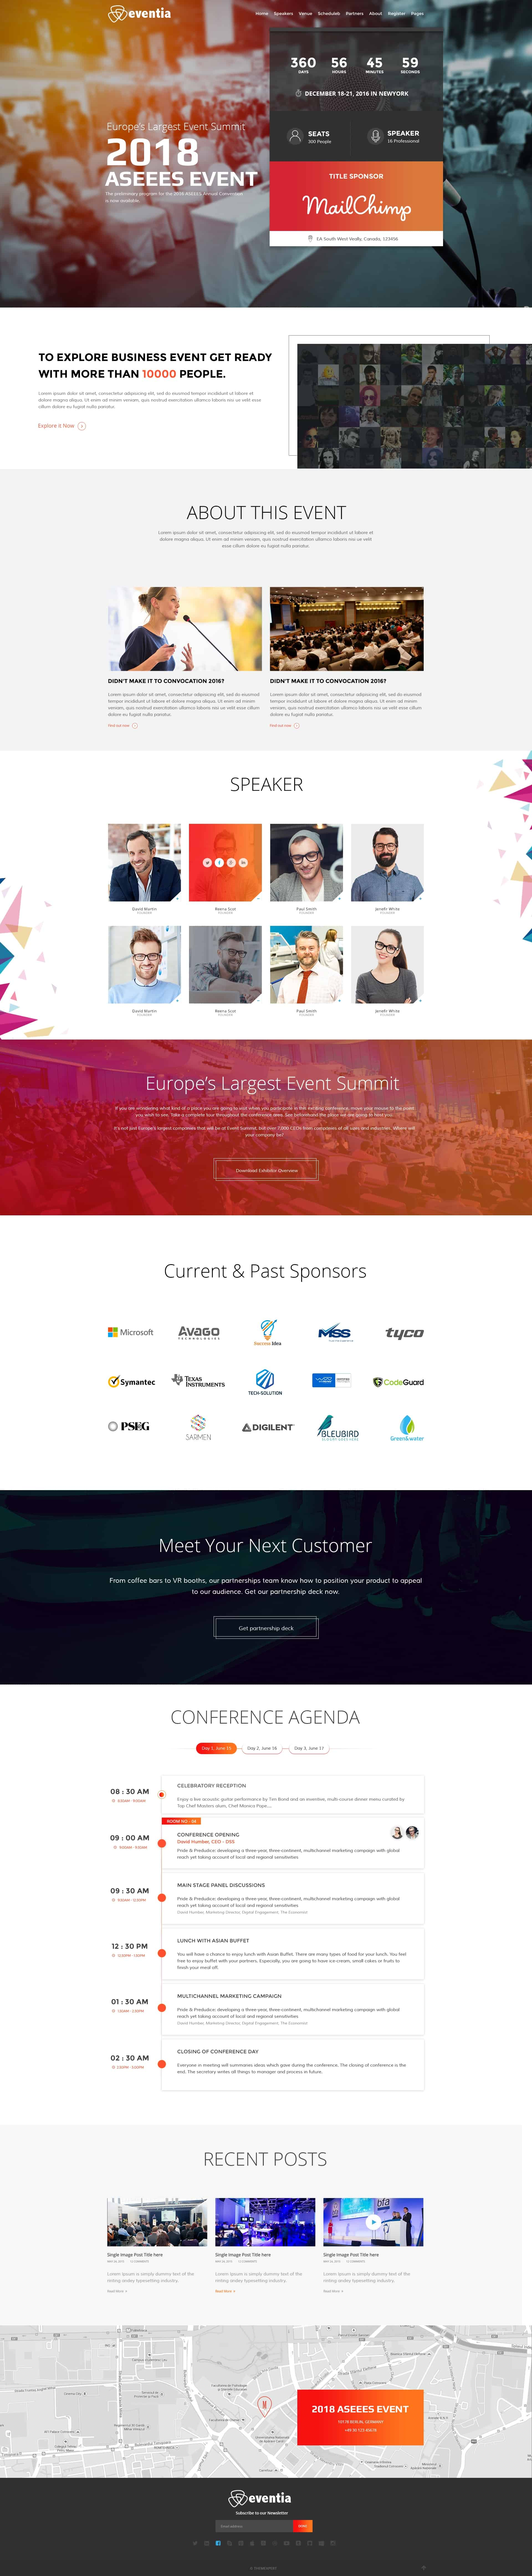 Conference & Event Management PSD Template 1